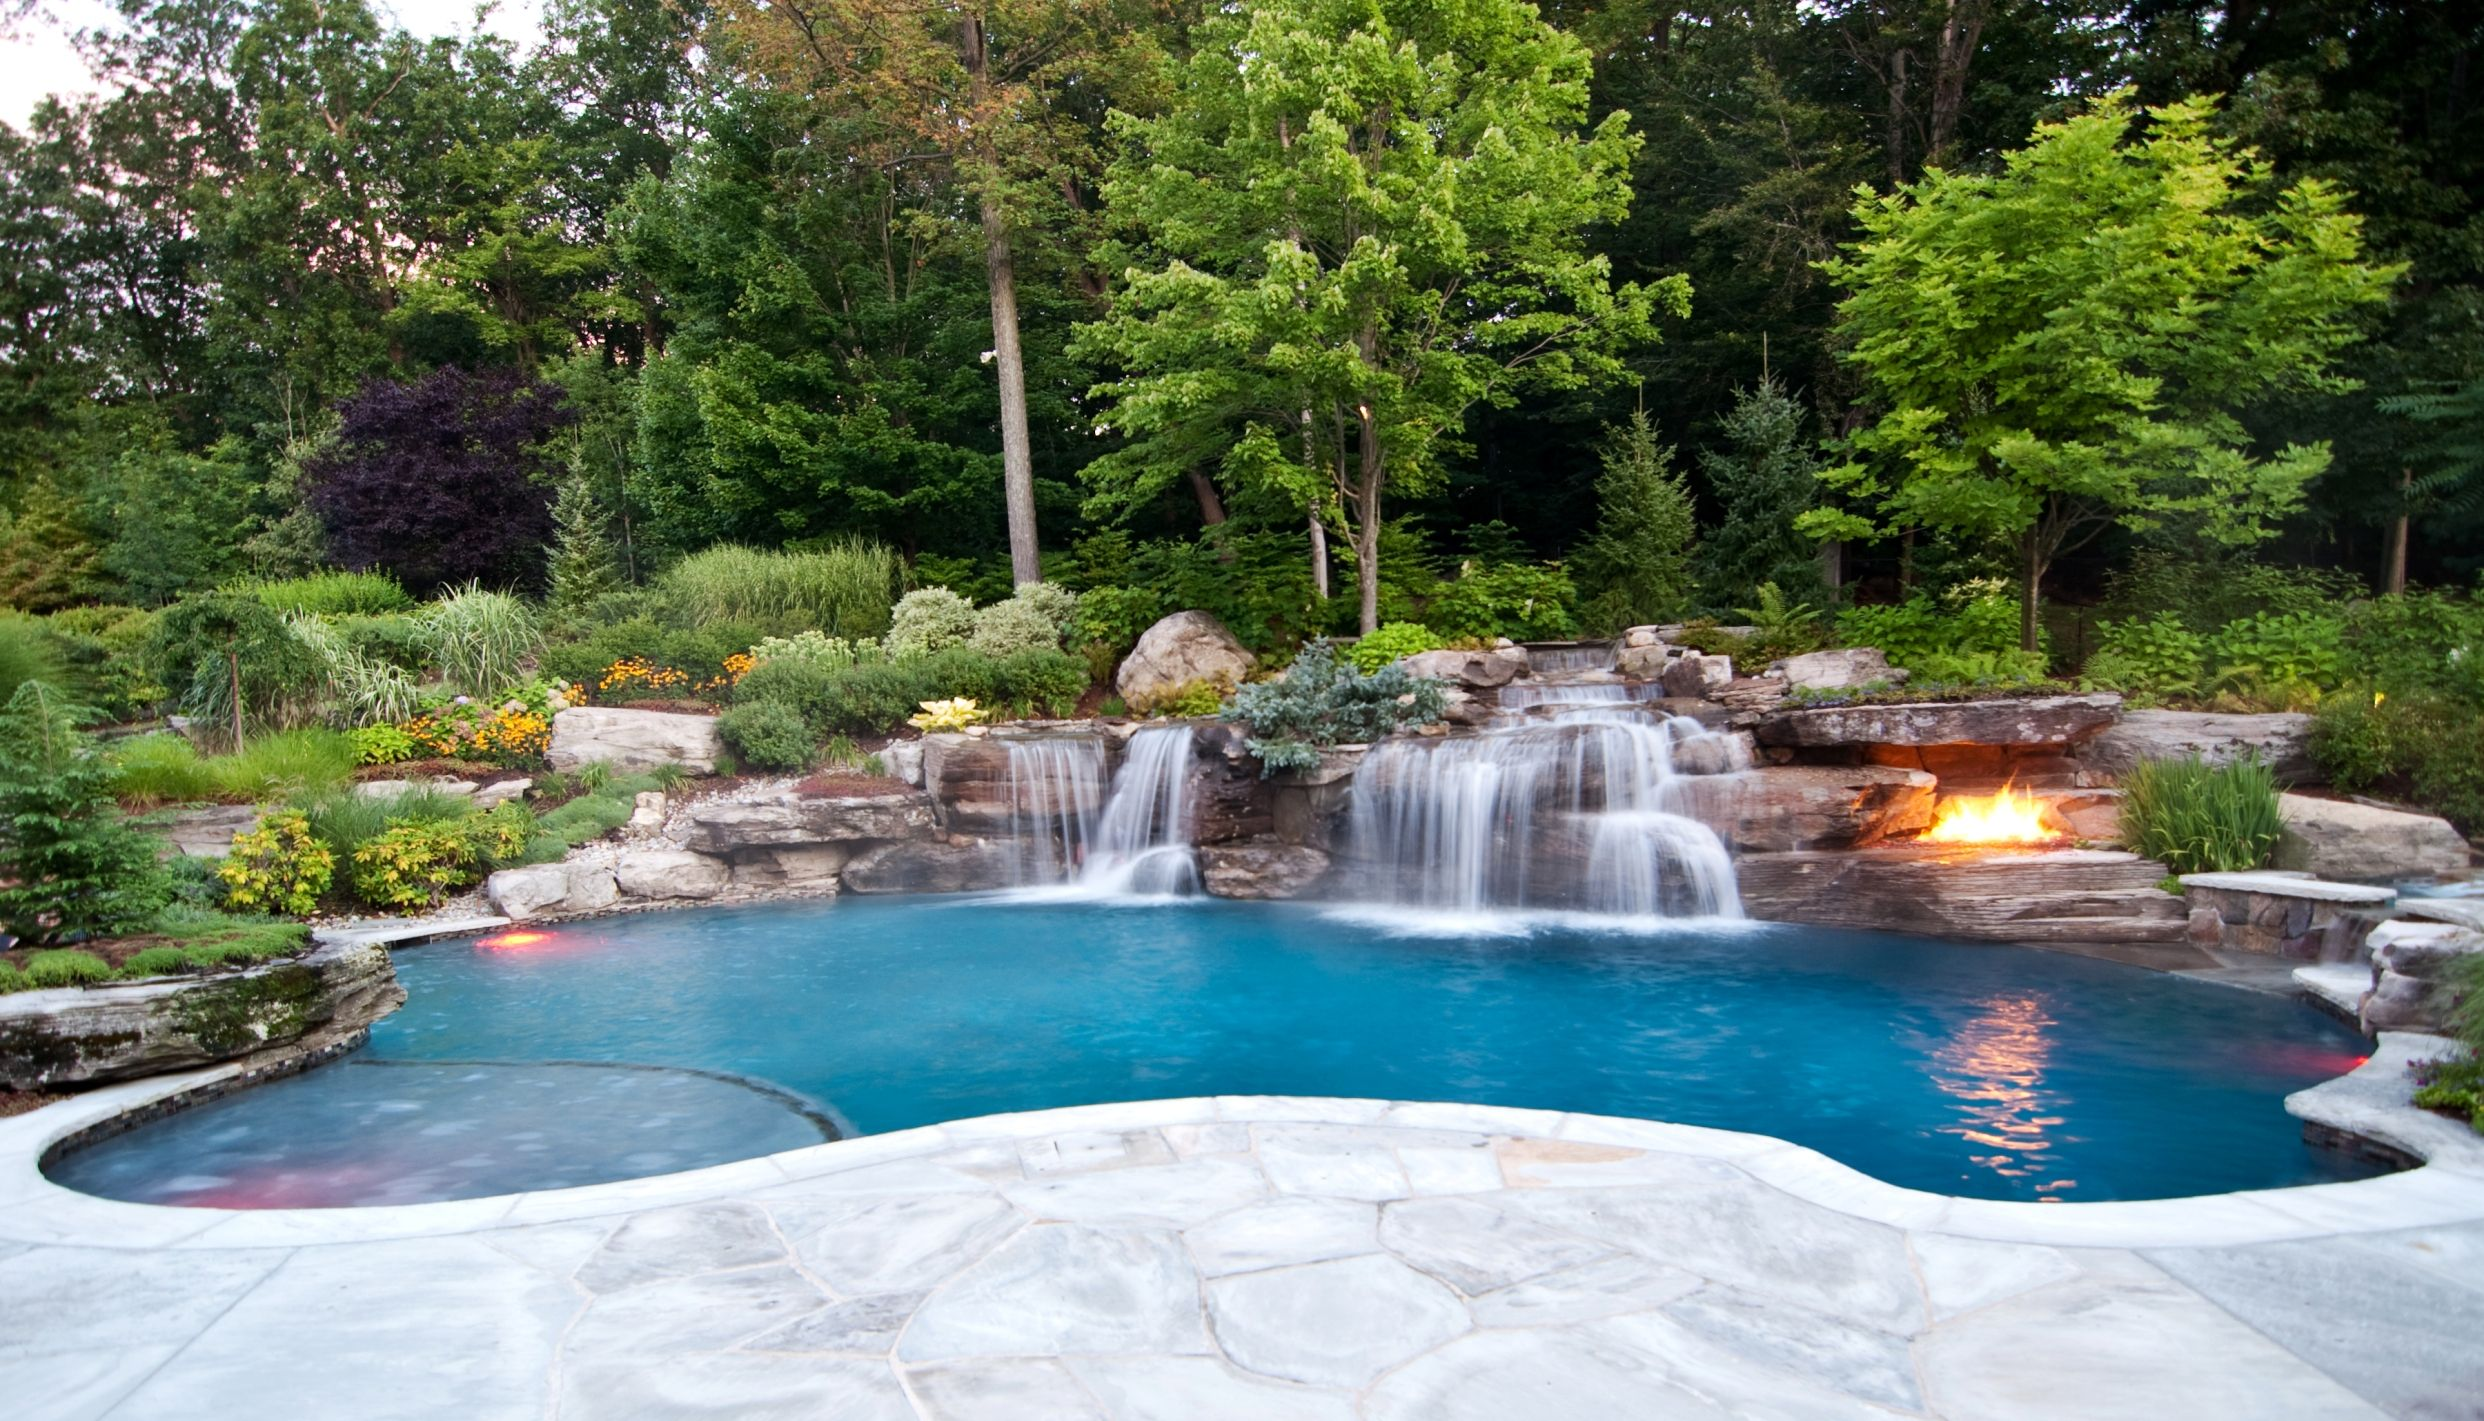 30 Awesome Backyard Pool Ideas With Gorgeous Landscaping Designs